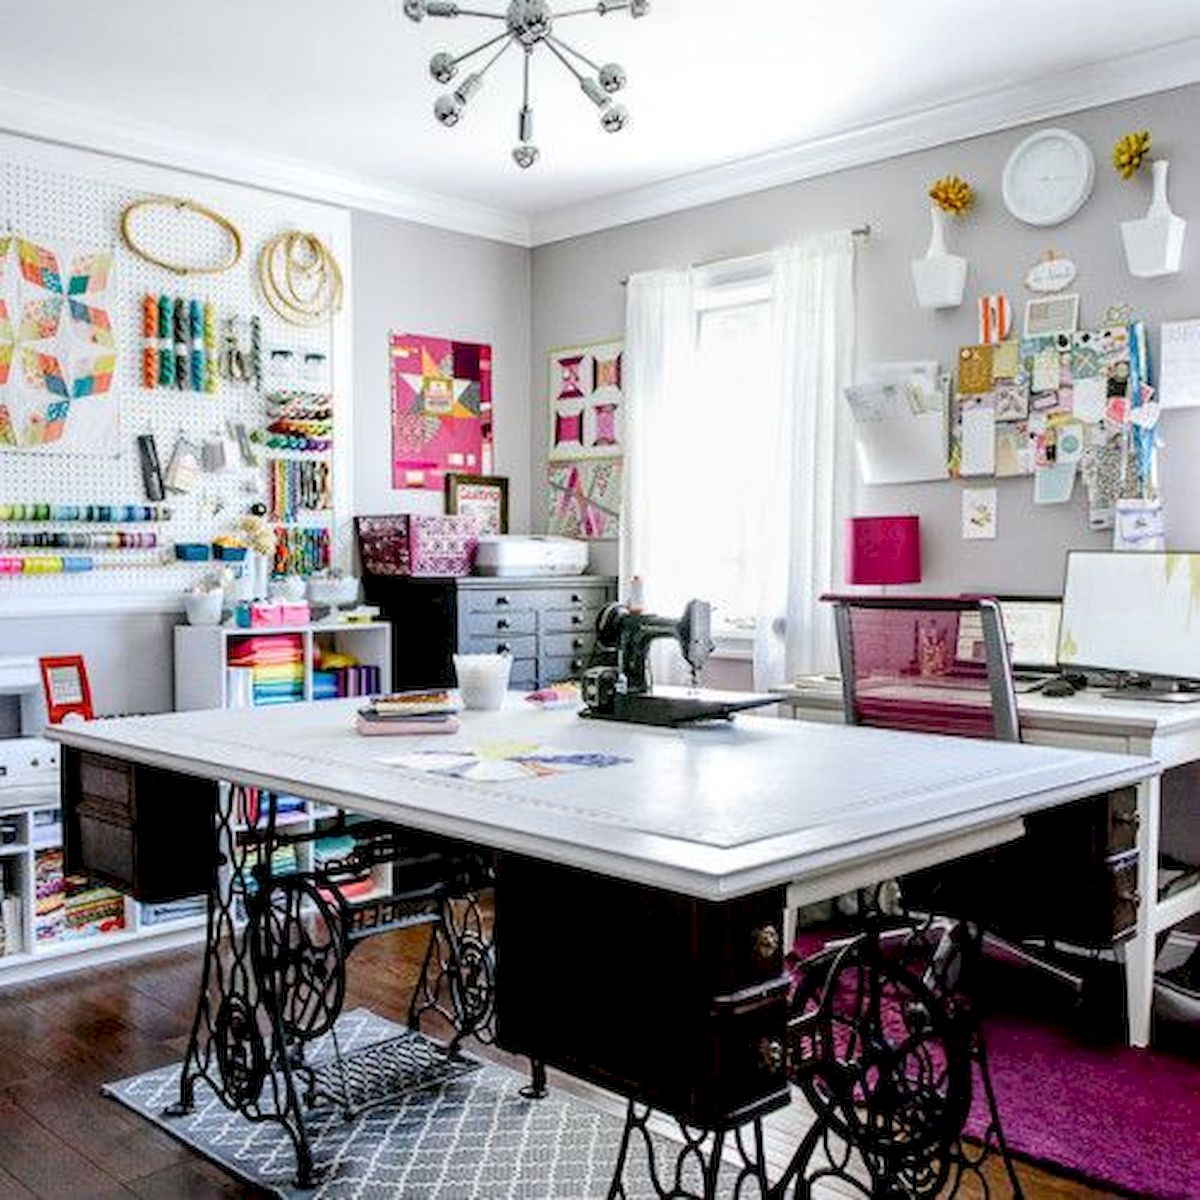 50 Most Popular Craft Room Sewing Decor Ideas (31)